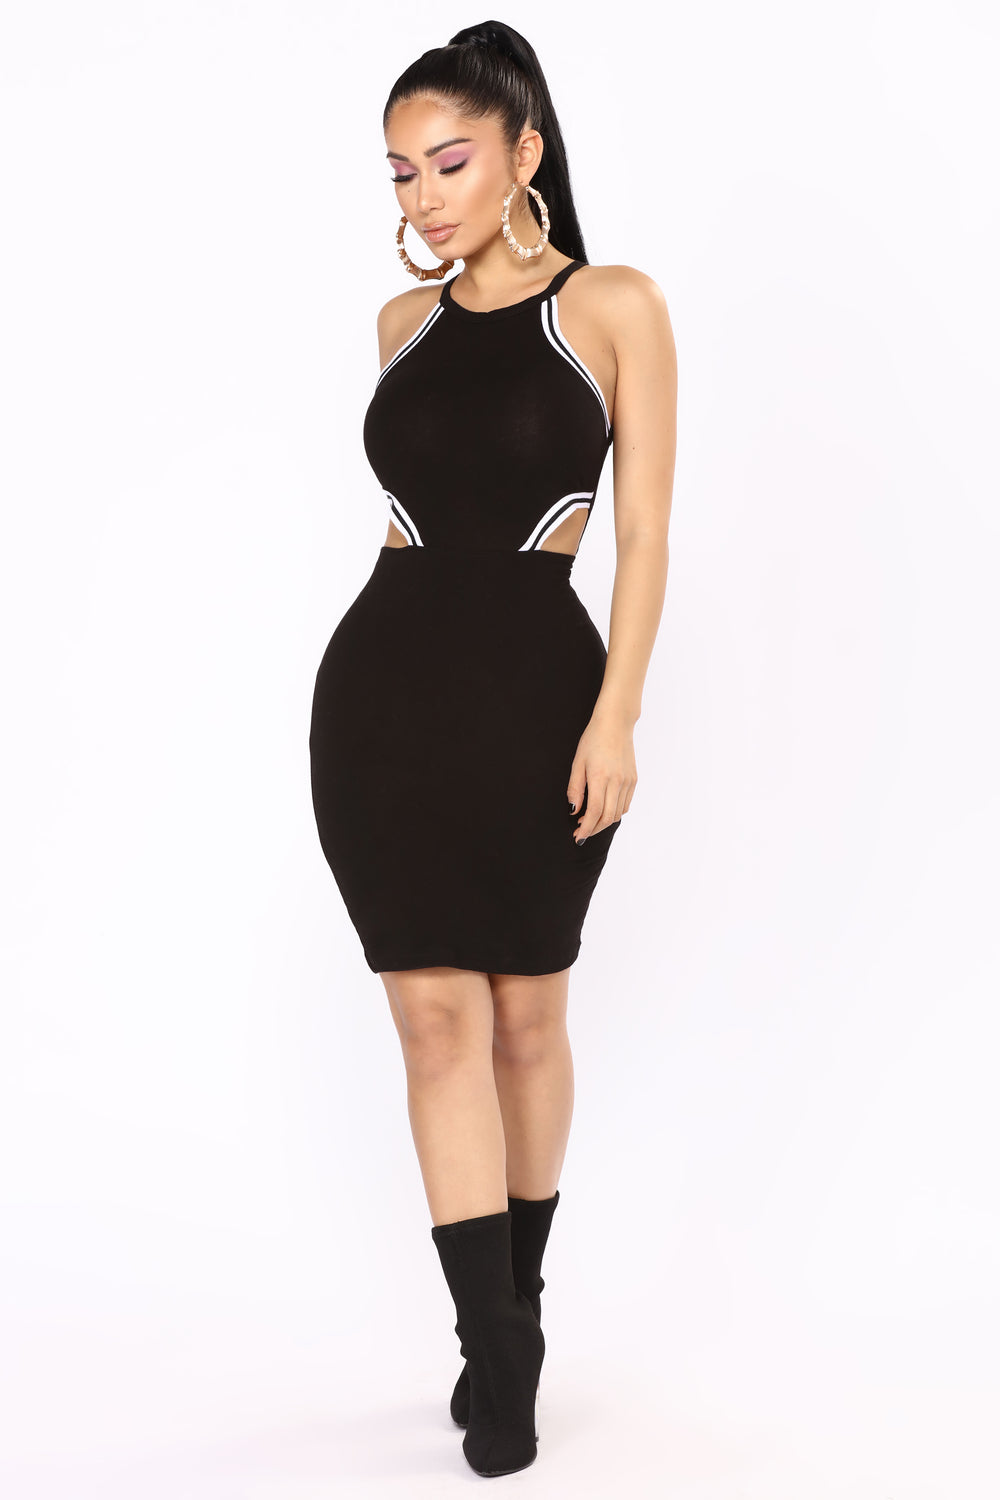 Outfield Cutout Dress - Black